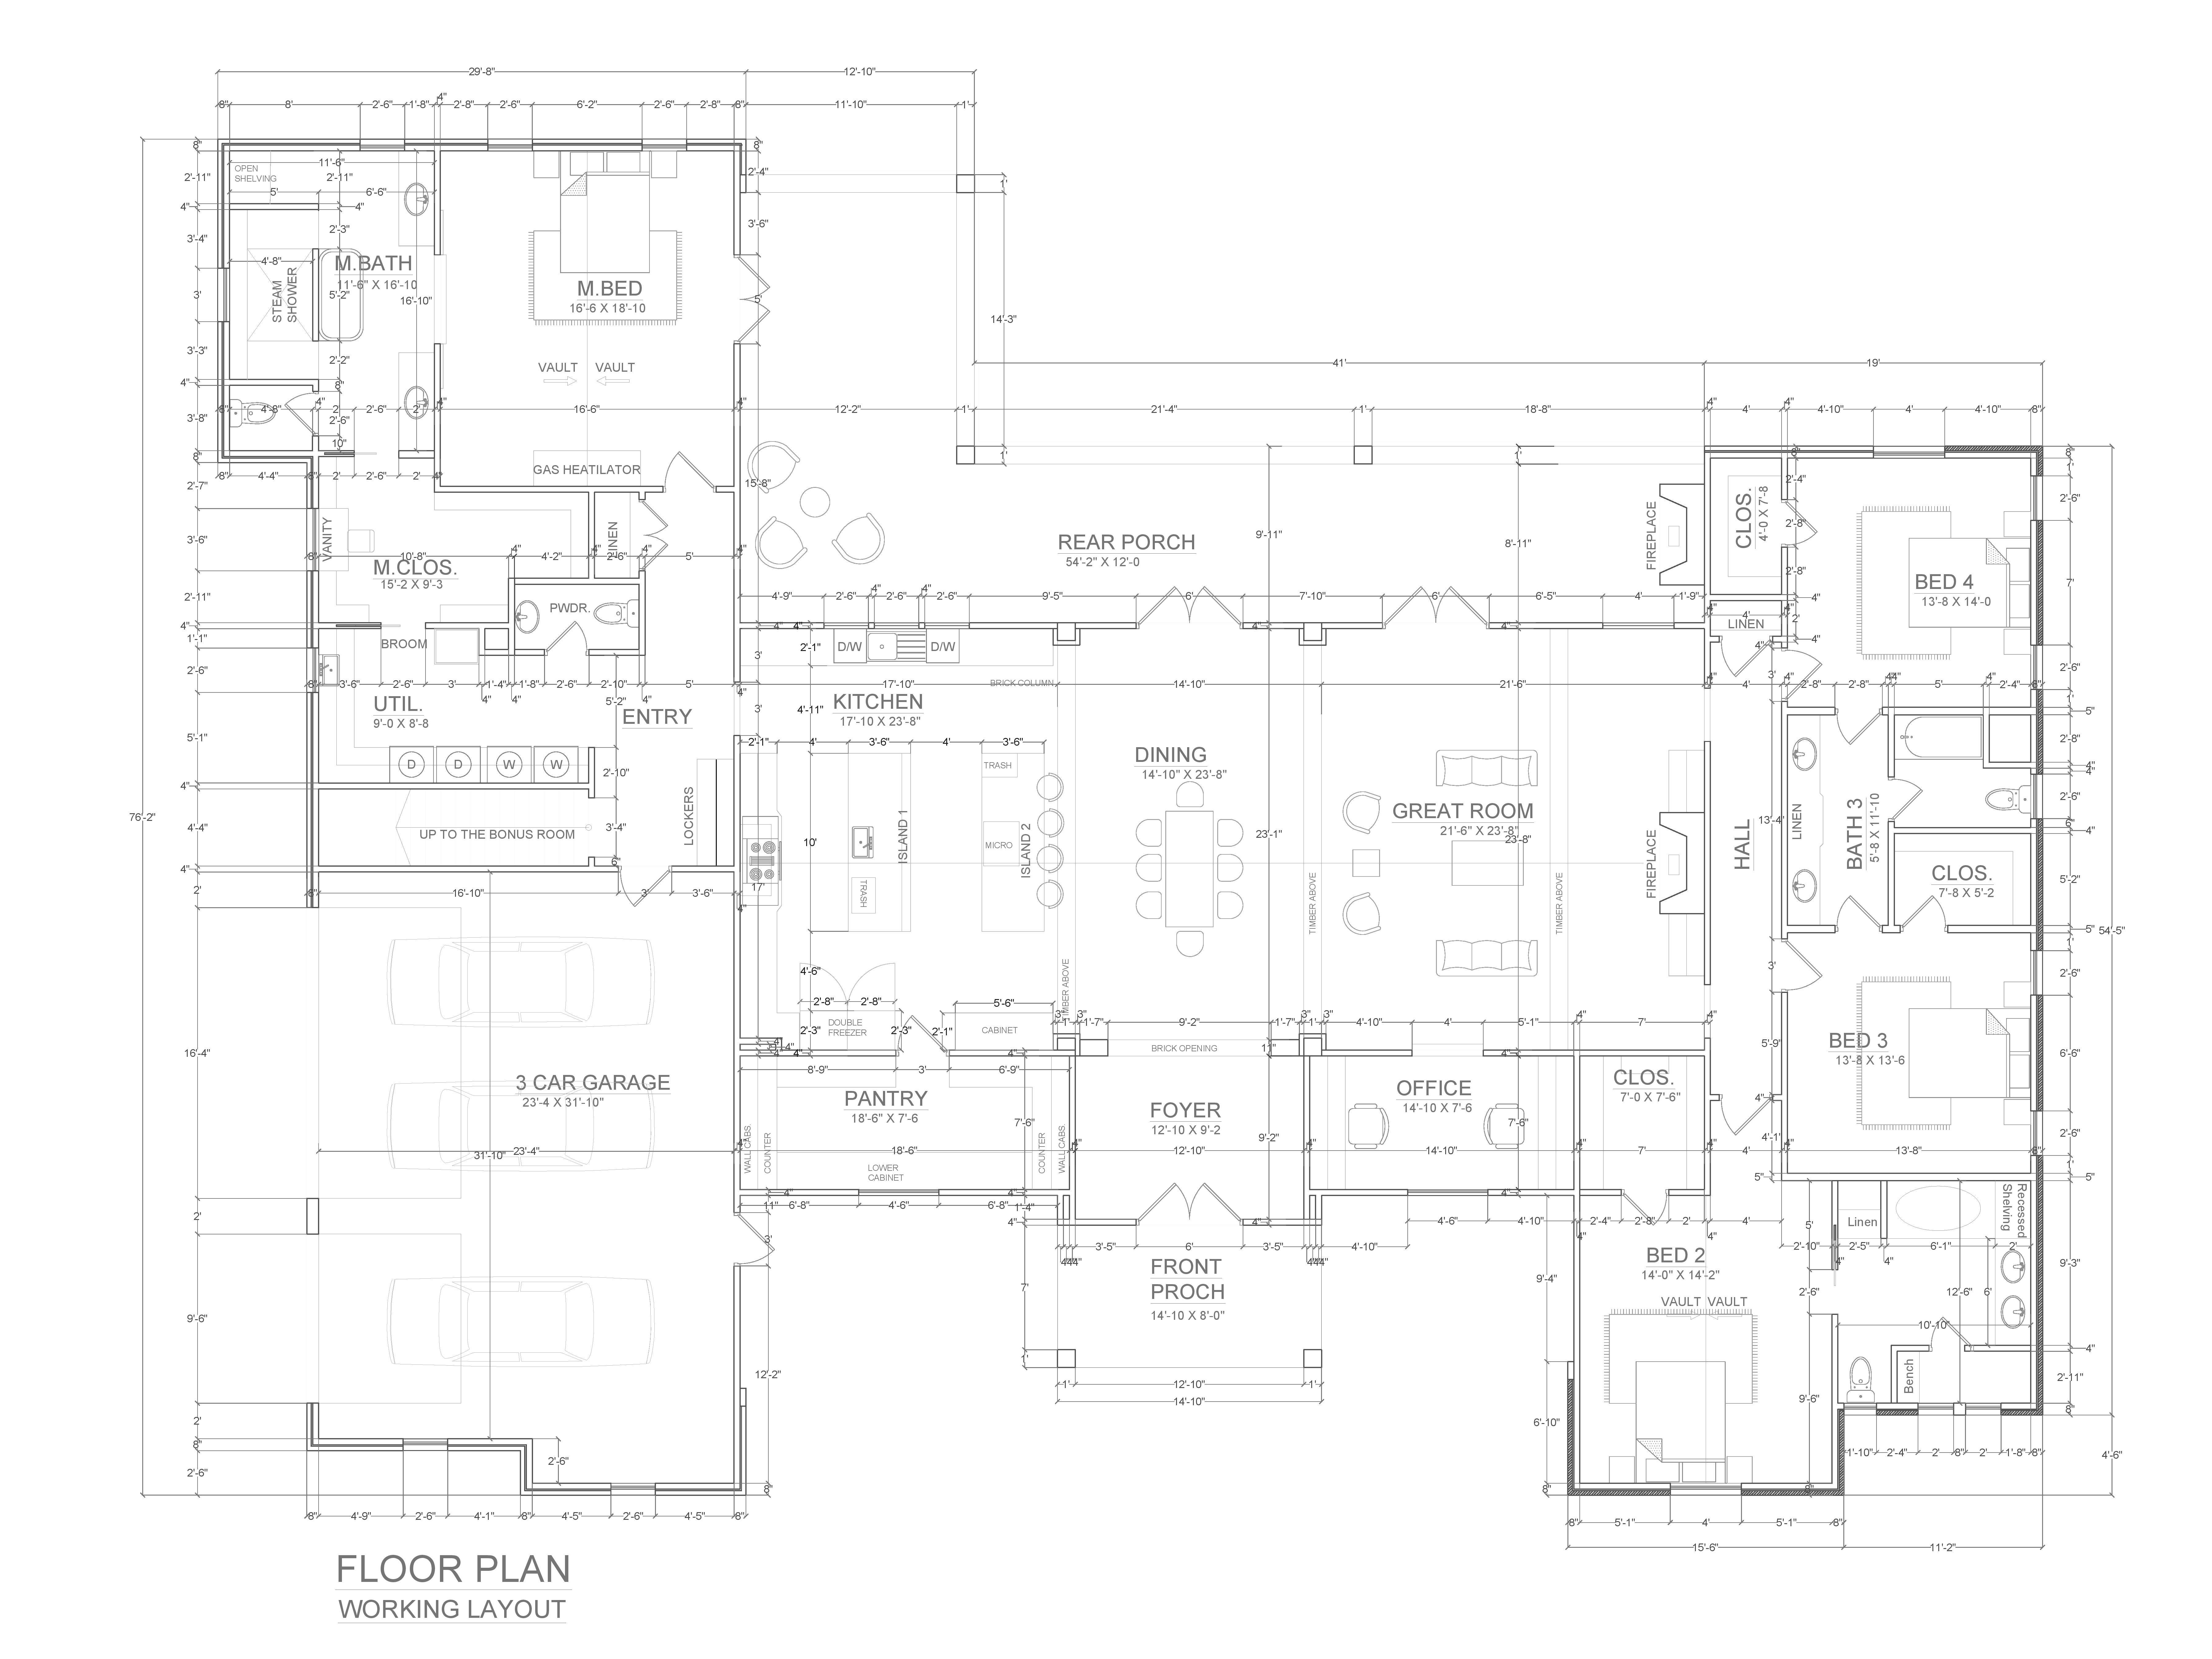 I Will Design Your Architectural Floor Plan In Autocad Architectural Floor Plans Floor Plan Drawing Autocad